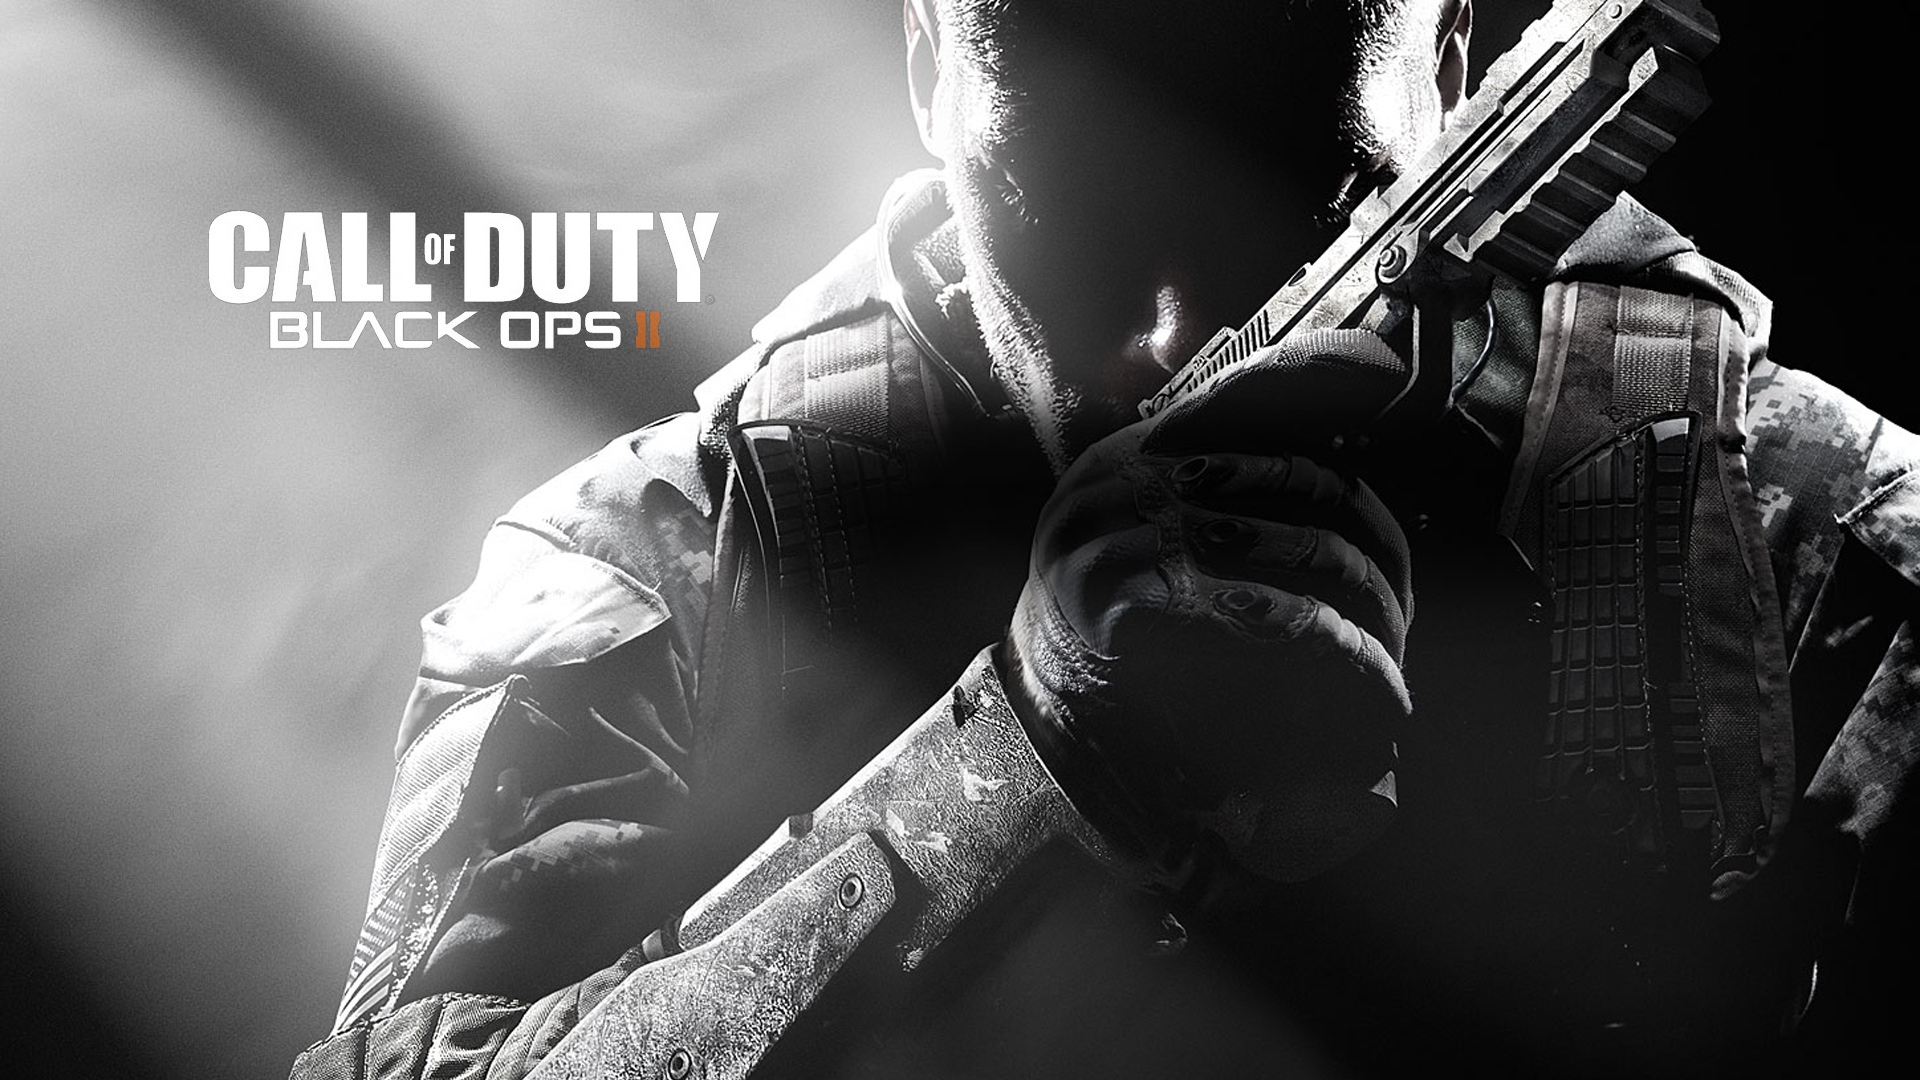 Call Of Duty Black Ops 2 Hd Games 4k Wallpapers Images